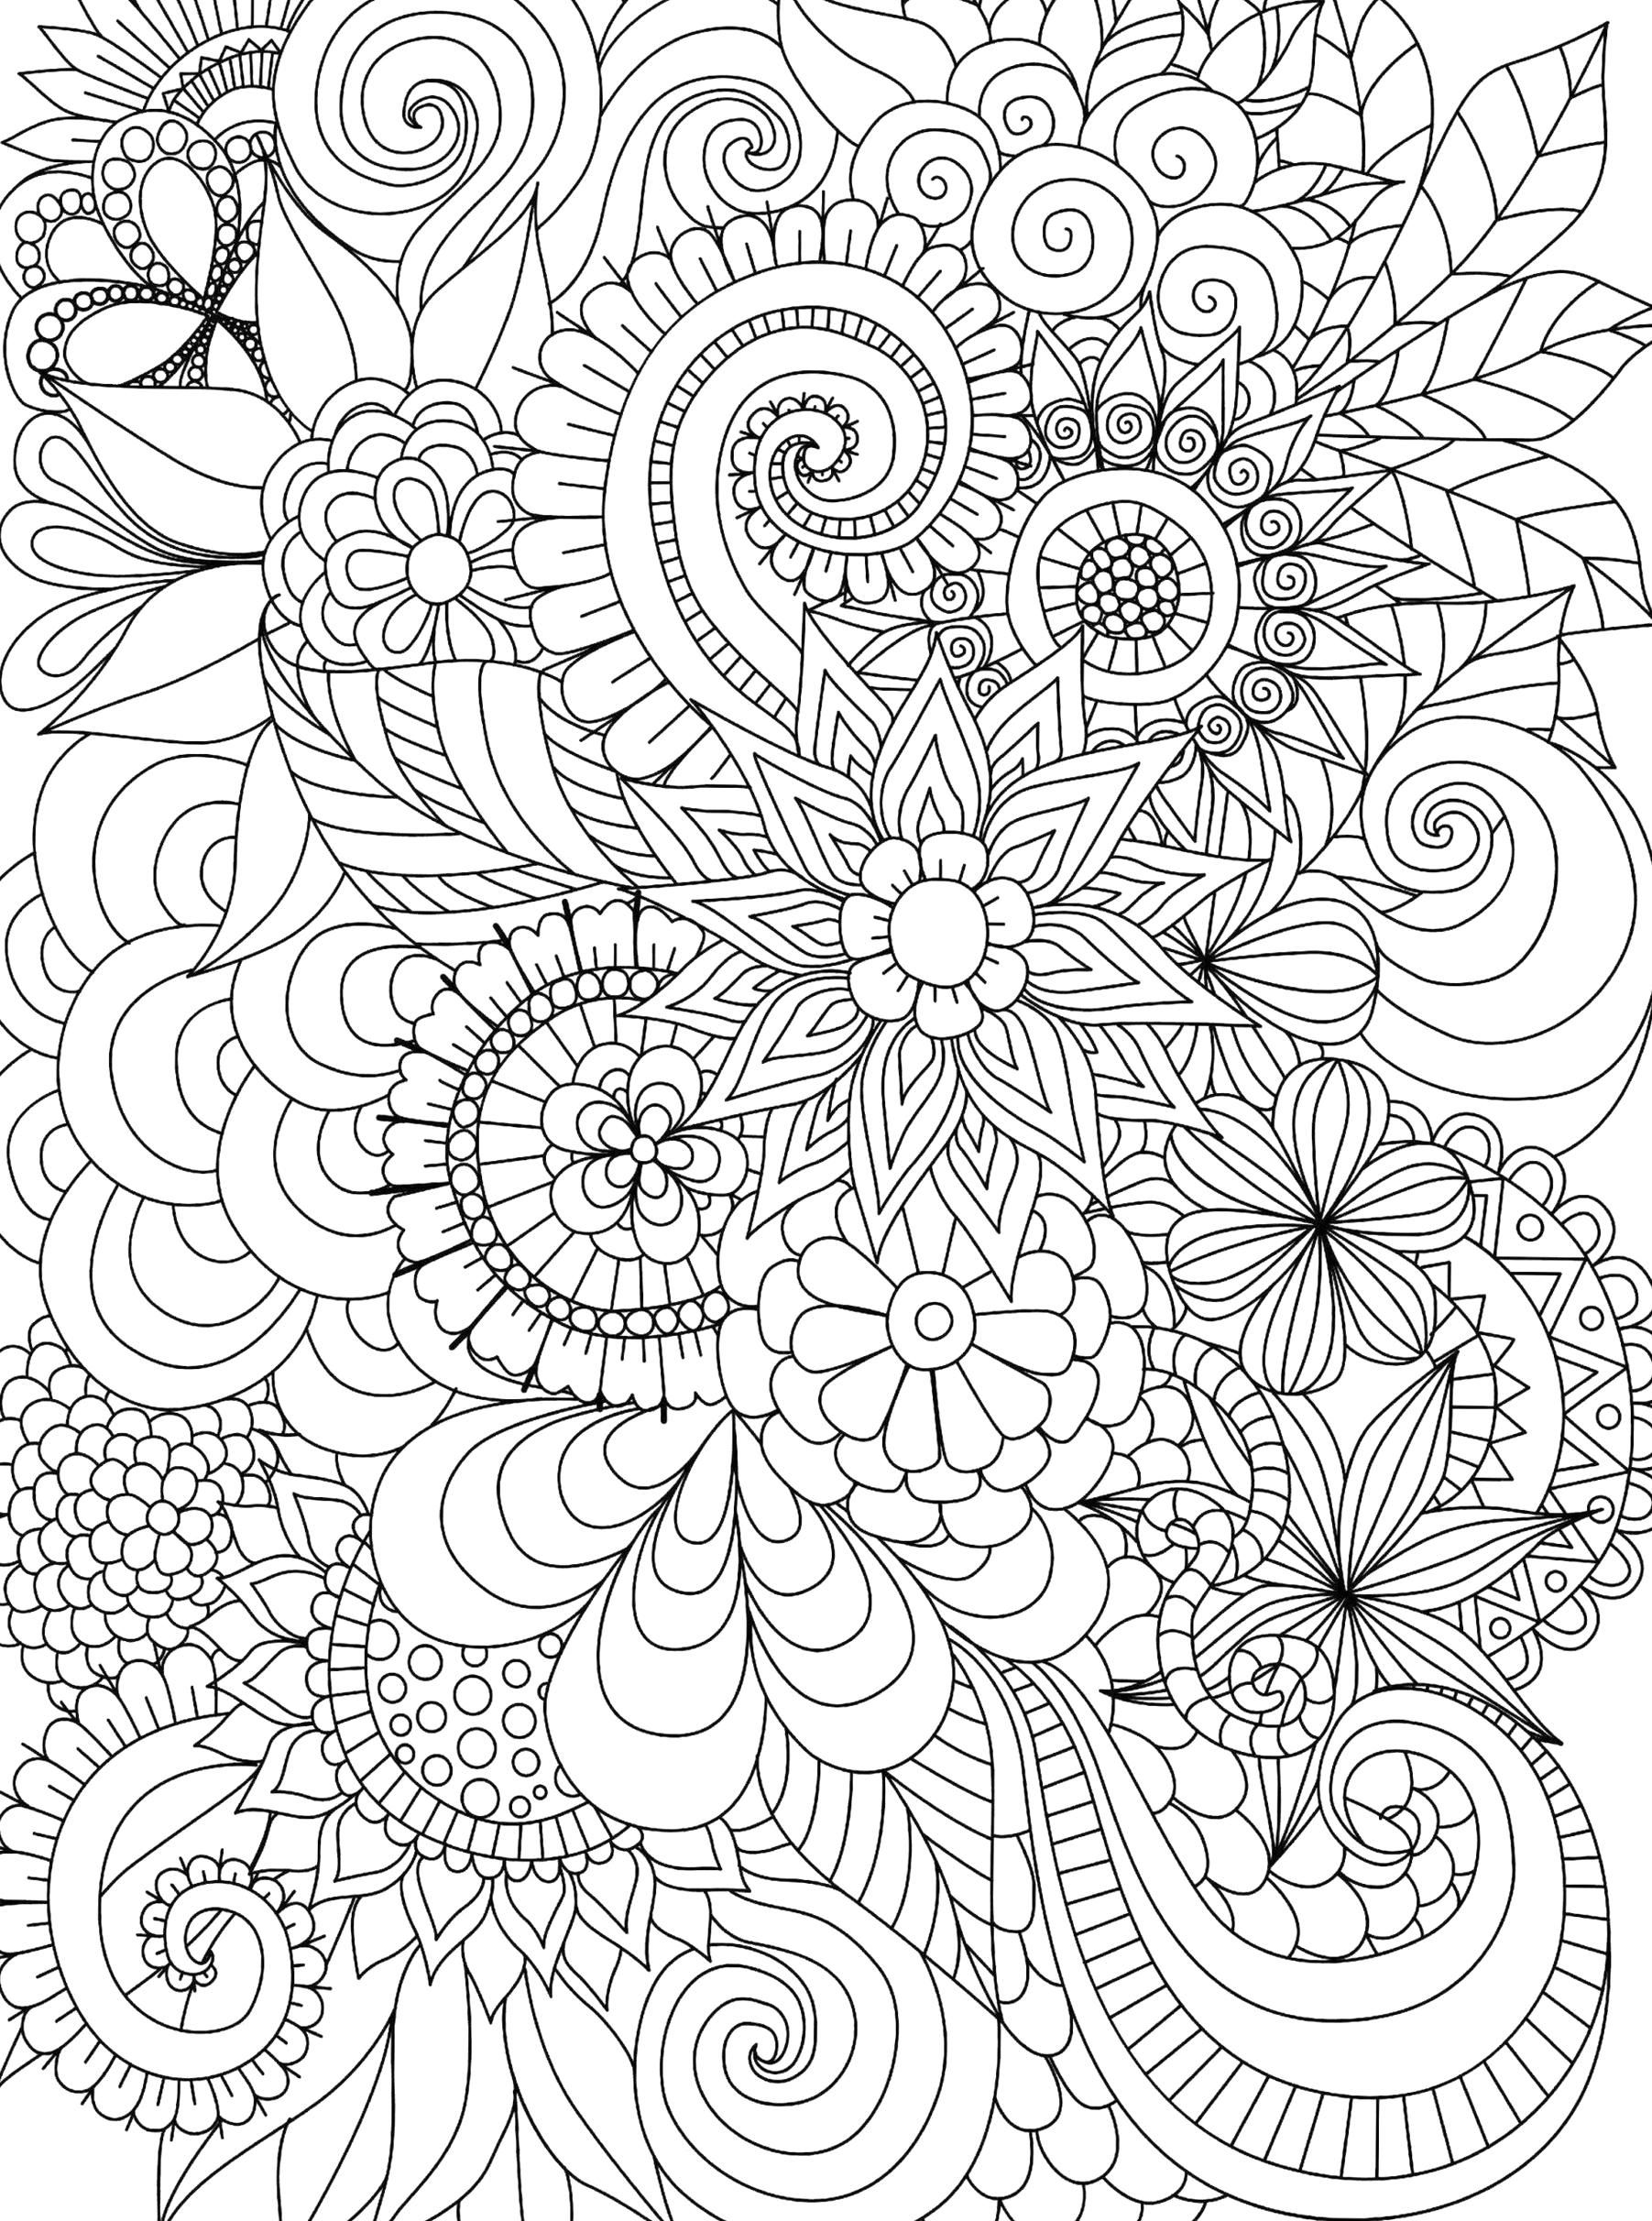 Large Mandala Coloring Pages Page Coloring Advanceddala Coloring Pages Free Printable Wendyleebest In 2020 Coloring Pages Color Tapestry